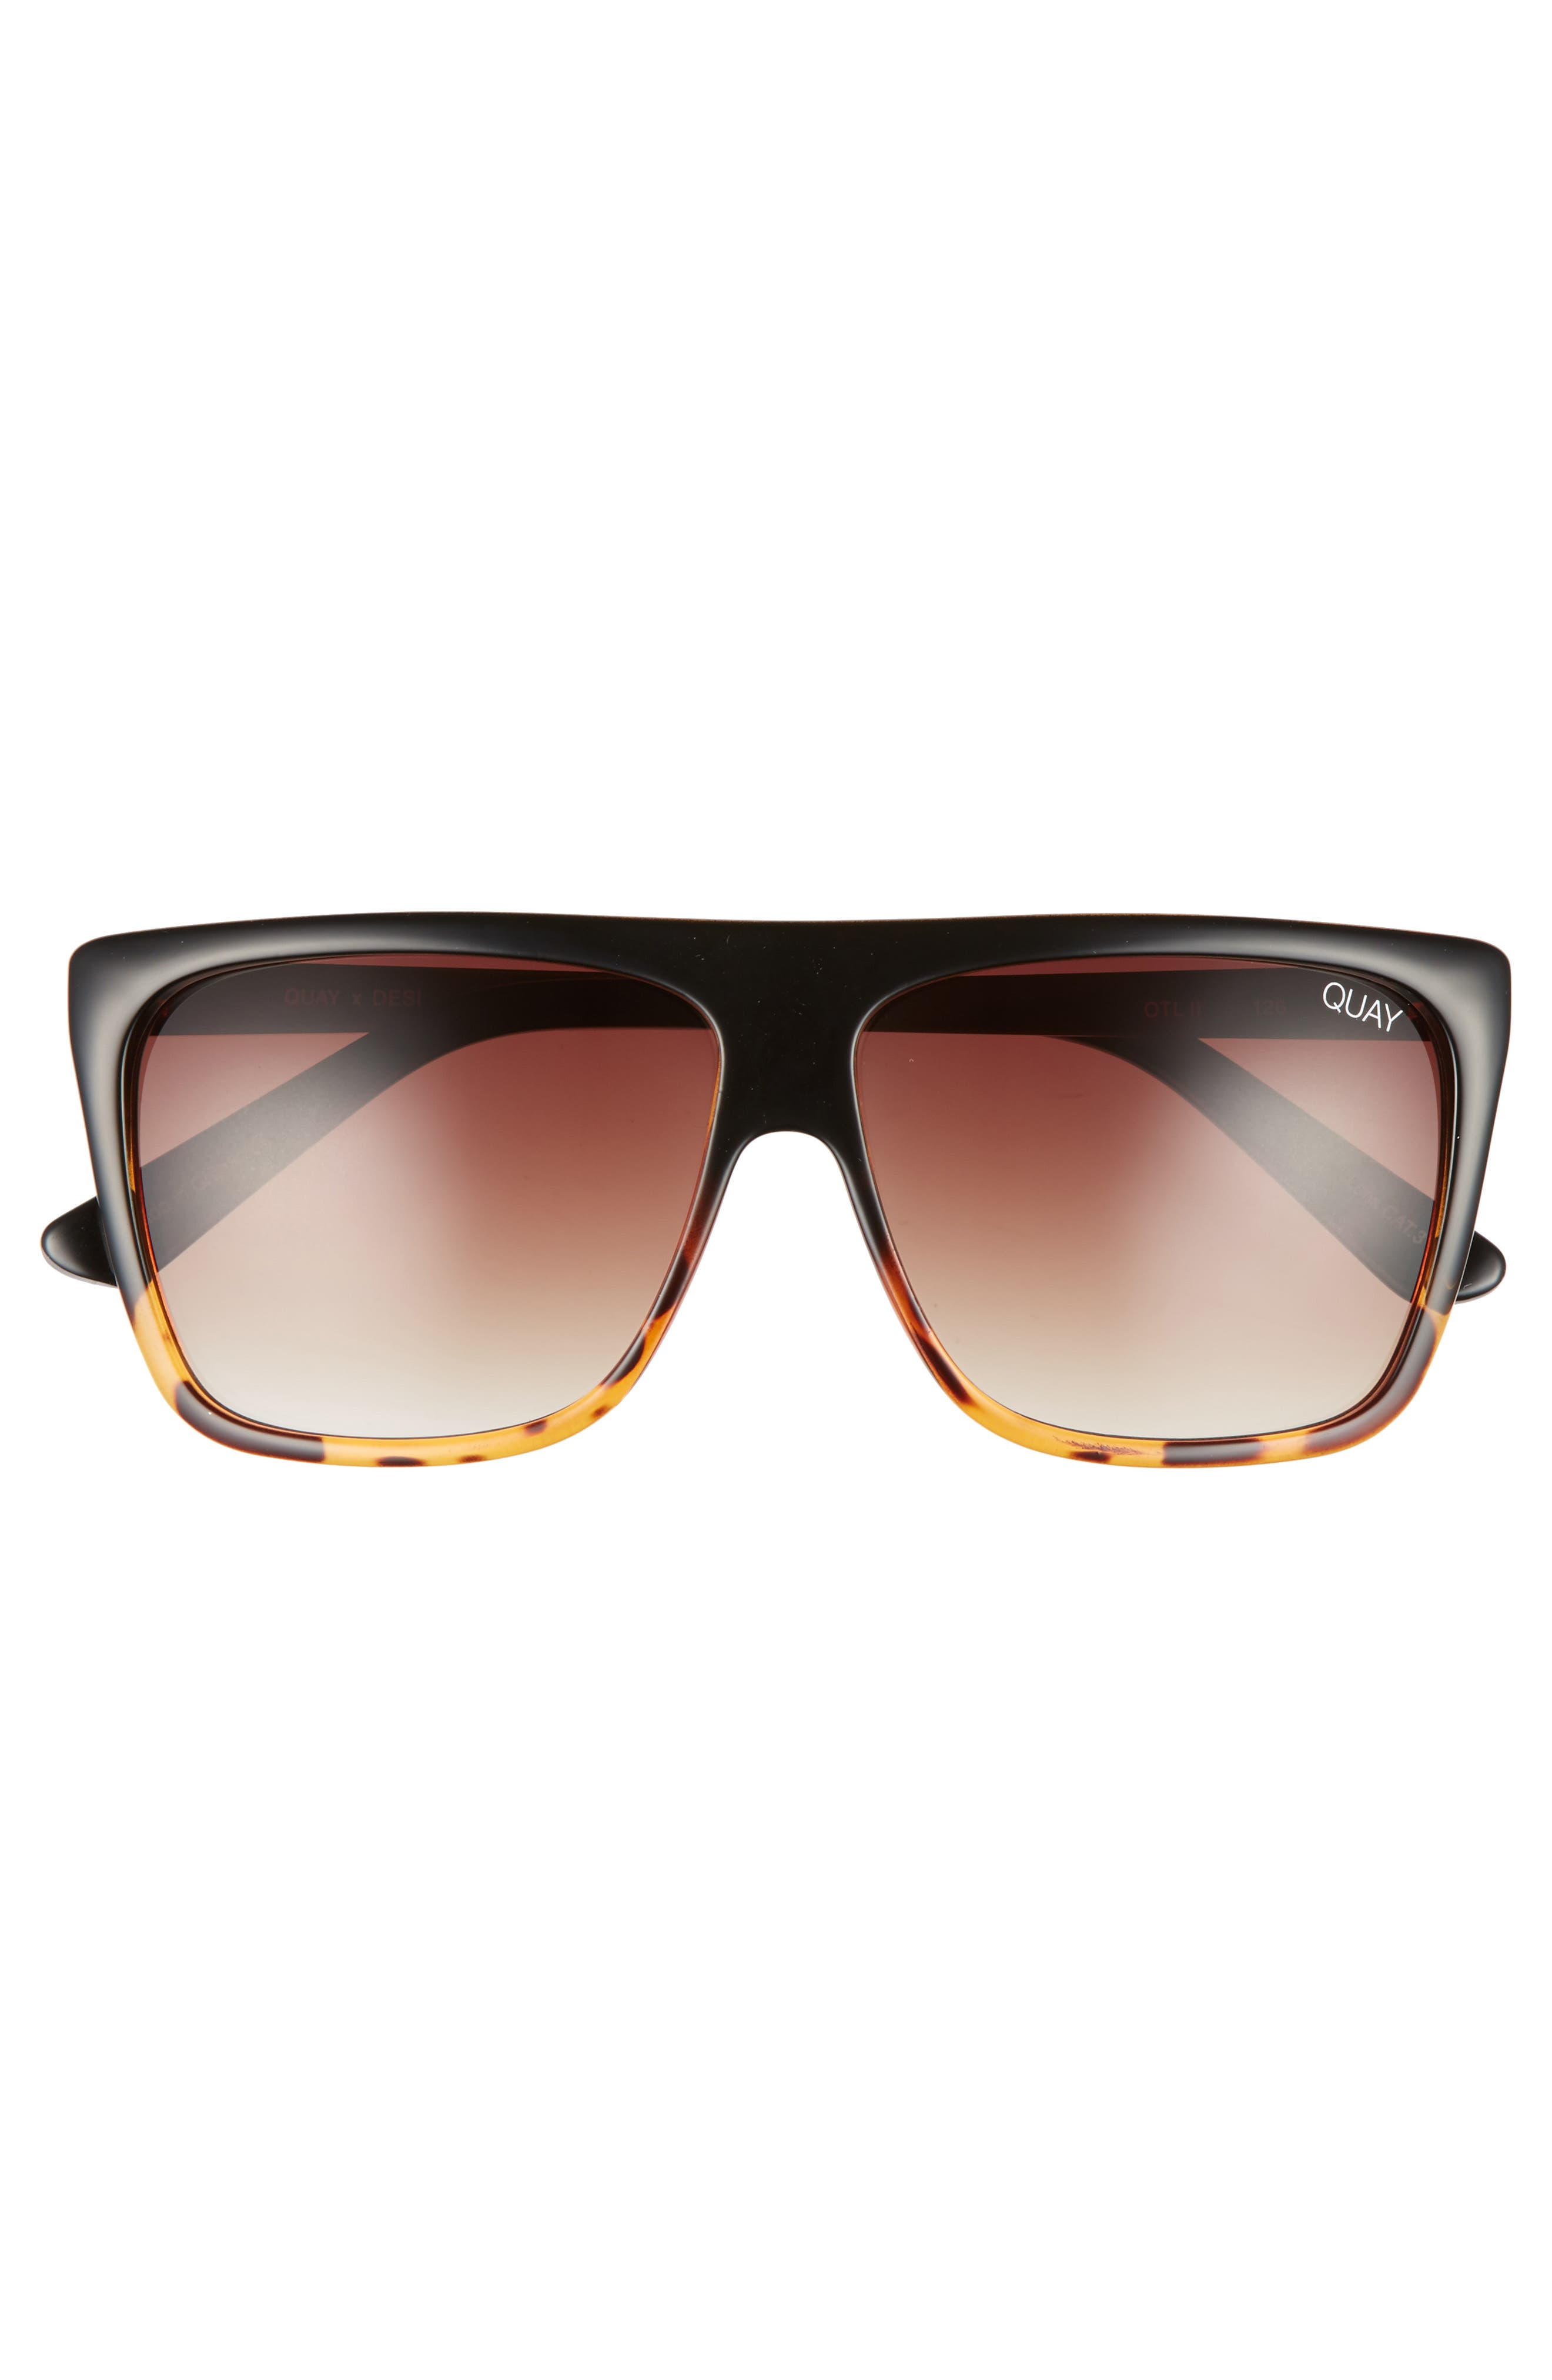 x Desi Perkins On the Low 60mm Square Sunglasses,                             Alternate thumbnail 3, color,                             TORT/ BROWN